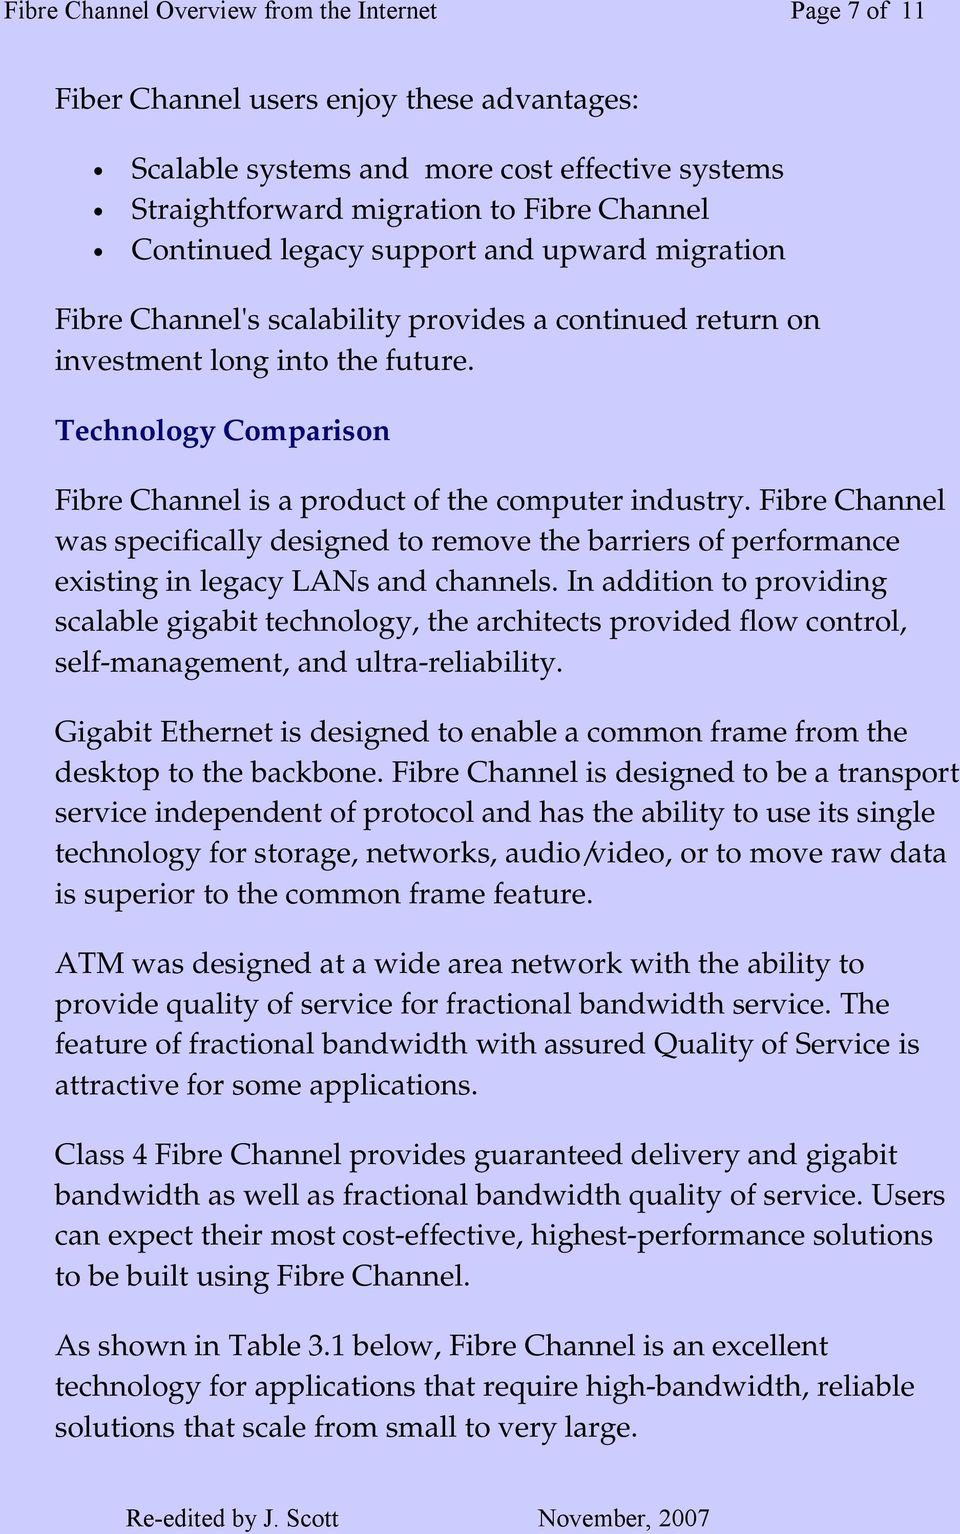 Technology Comparison Fibre Channel is a product of the computer industry. Fibre Channel was specifically designed to remove the barriers of performance existing in legacy LANs and channels.